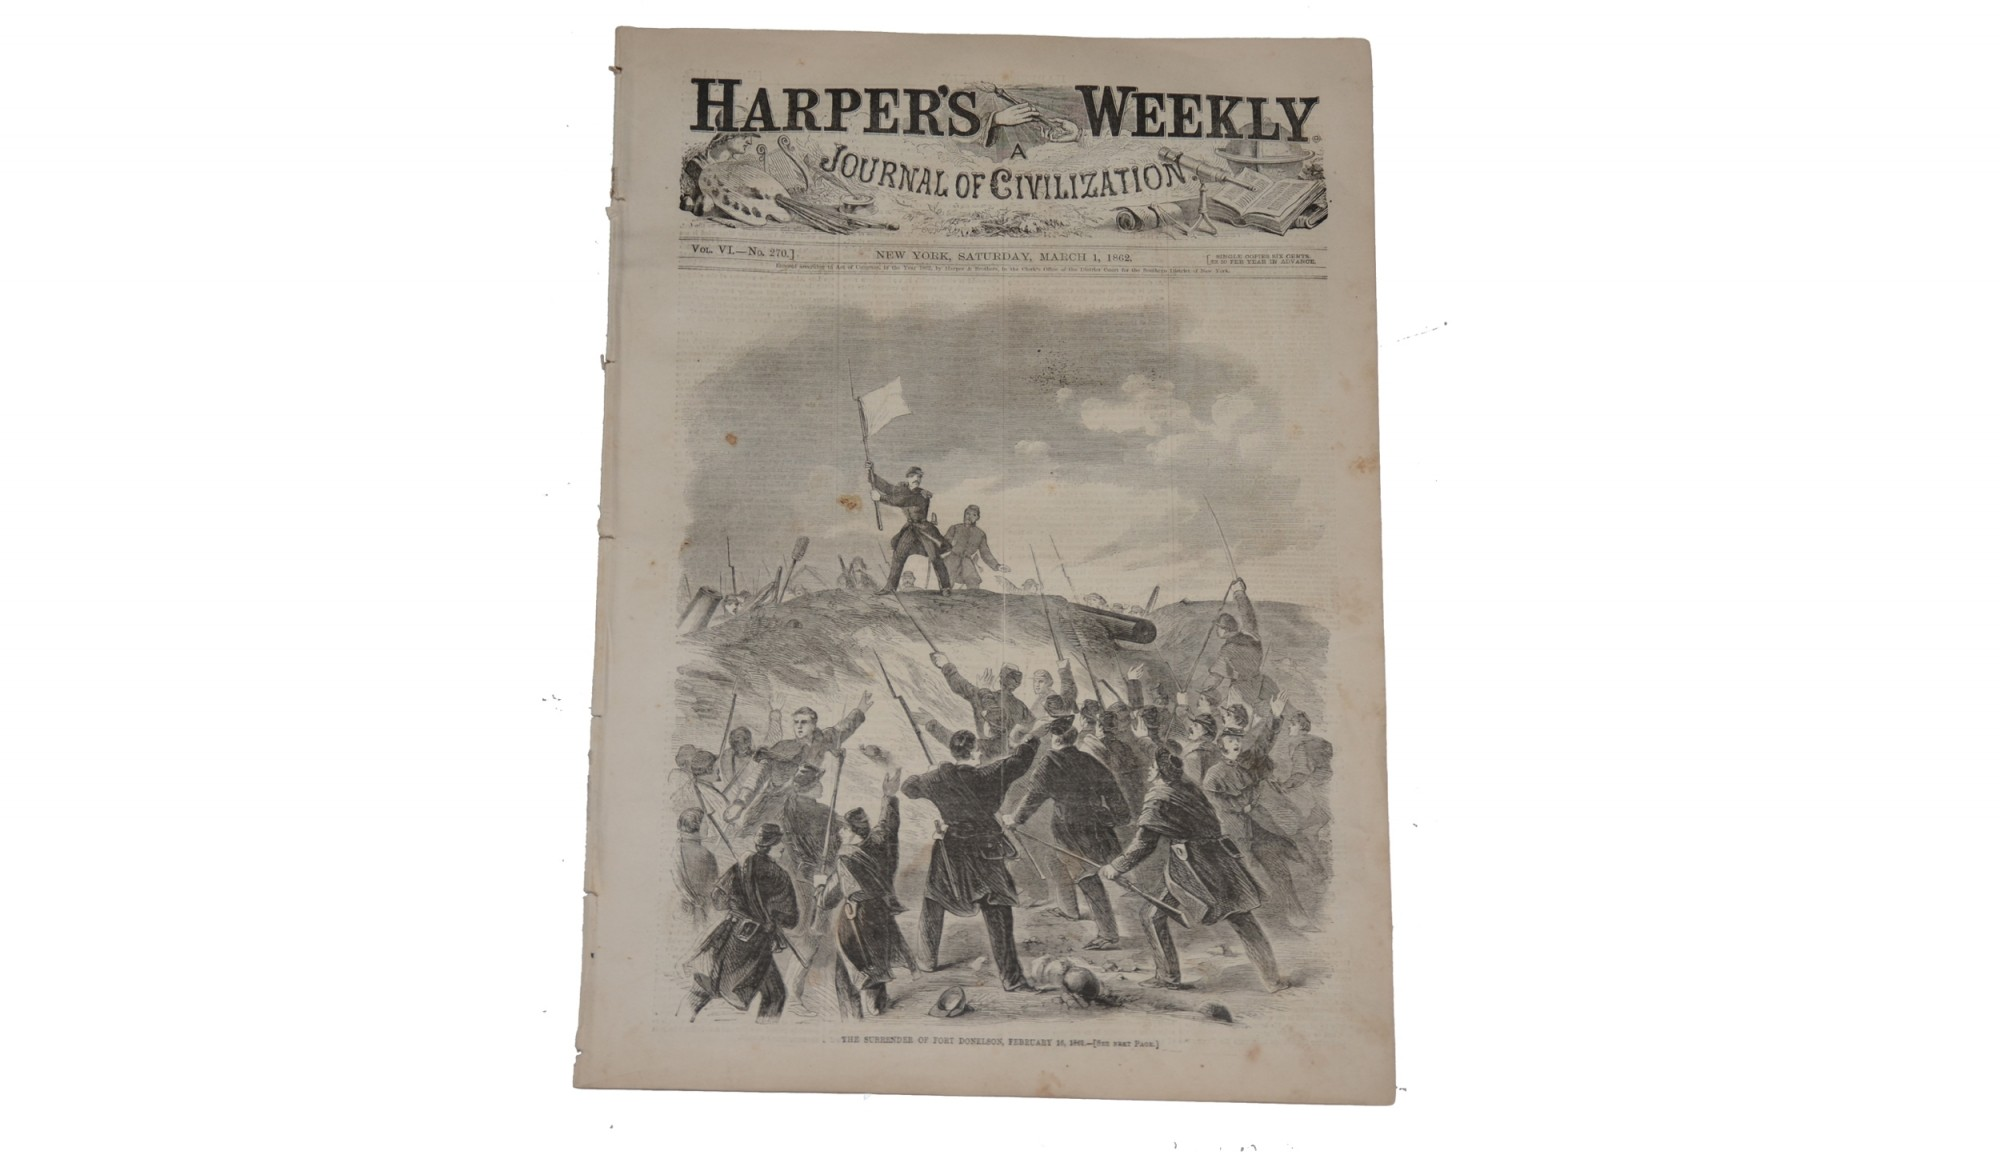 HARPER'S WEEKLY, NEW YORK, MARCH 1, 1862 - FORTS HENRY & DONELSON